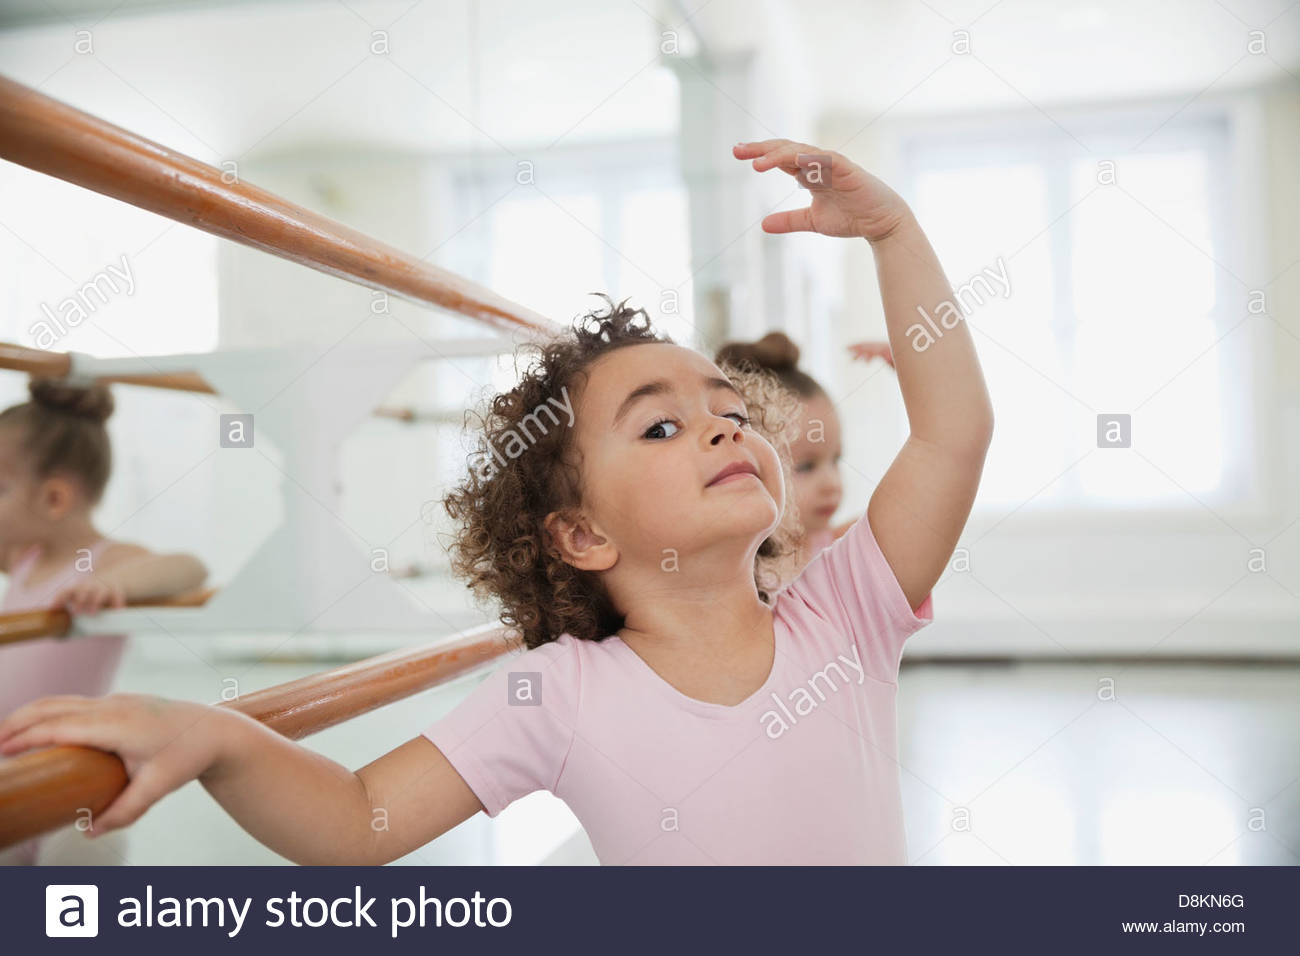 Portrait of Girl practicing ballet avec ami in ballet studio Photo Stock